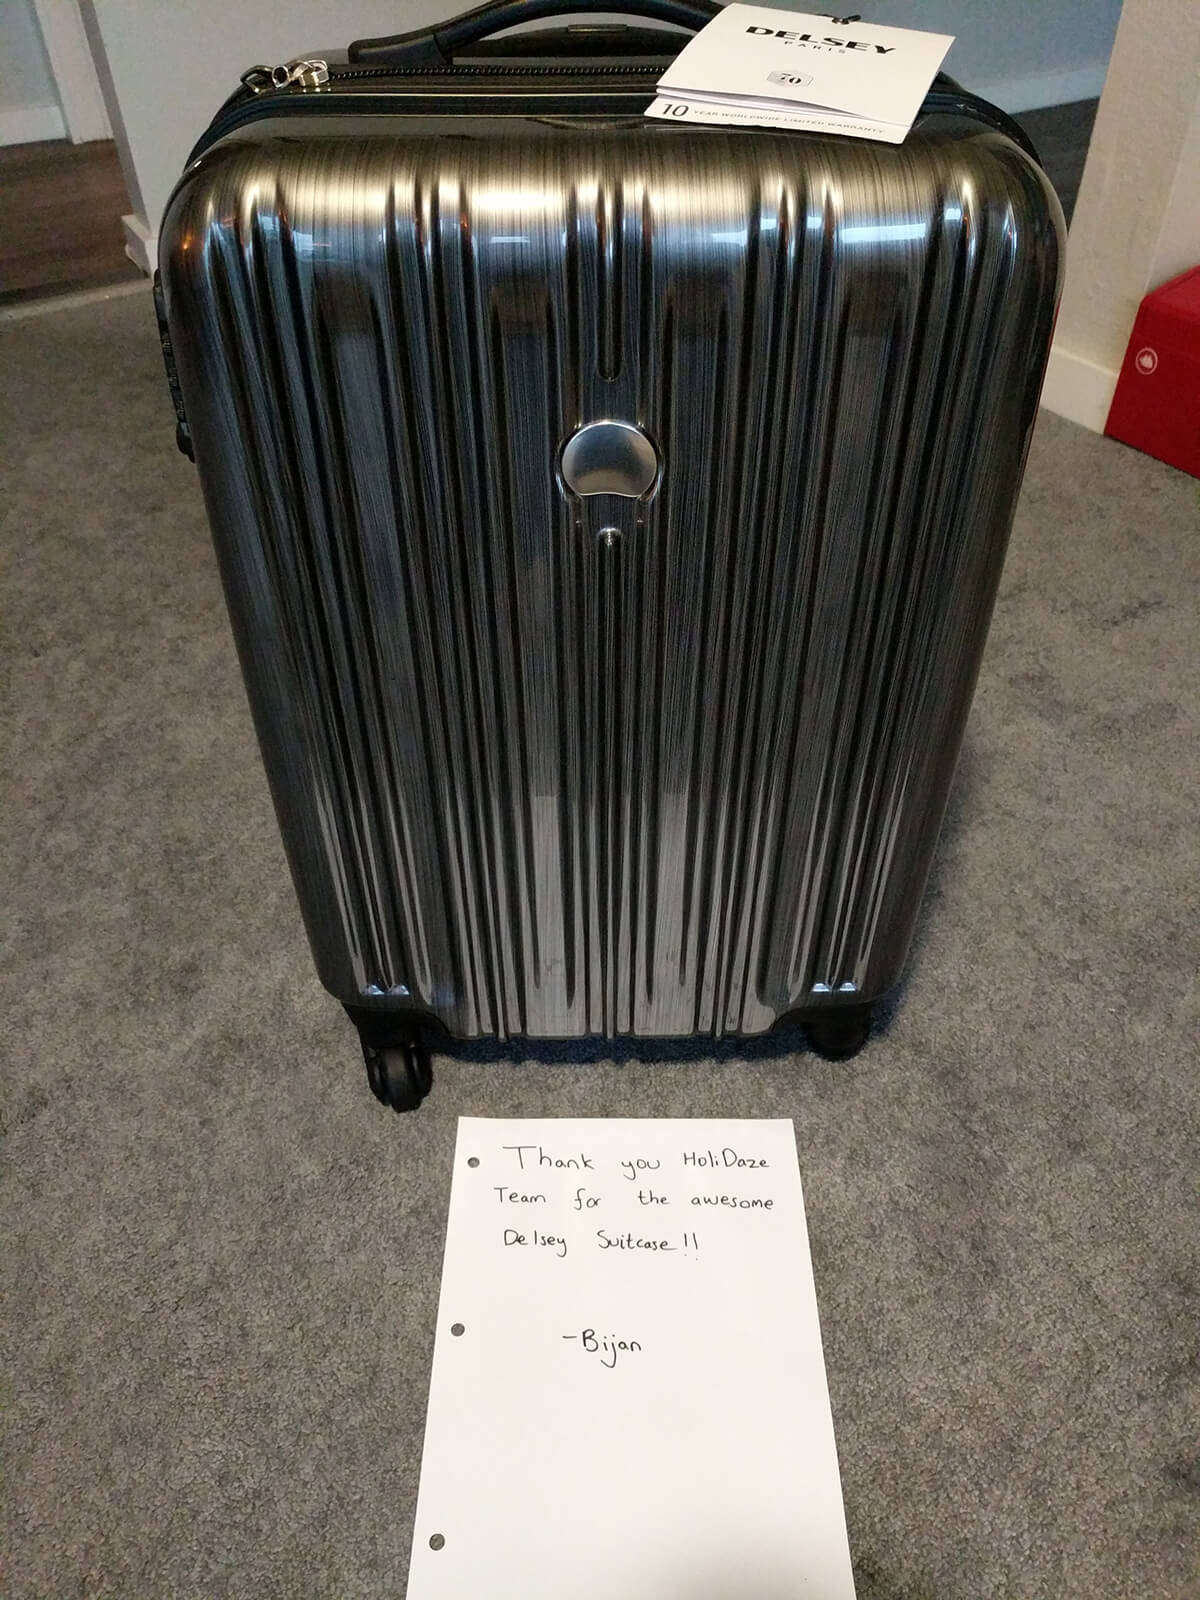 Another HoliDaze giveaways winner thanking me for his new Delsey suitcase